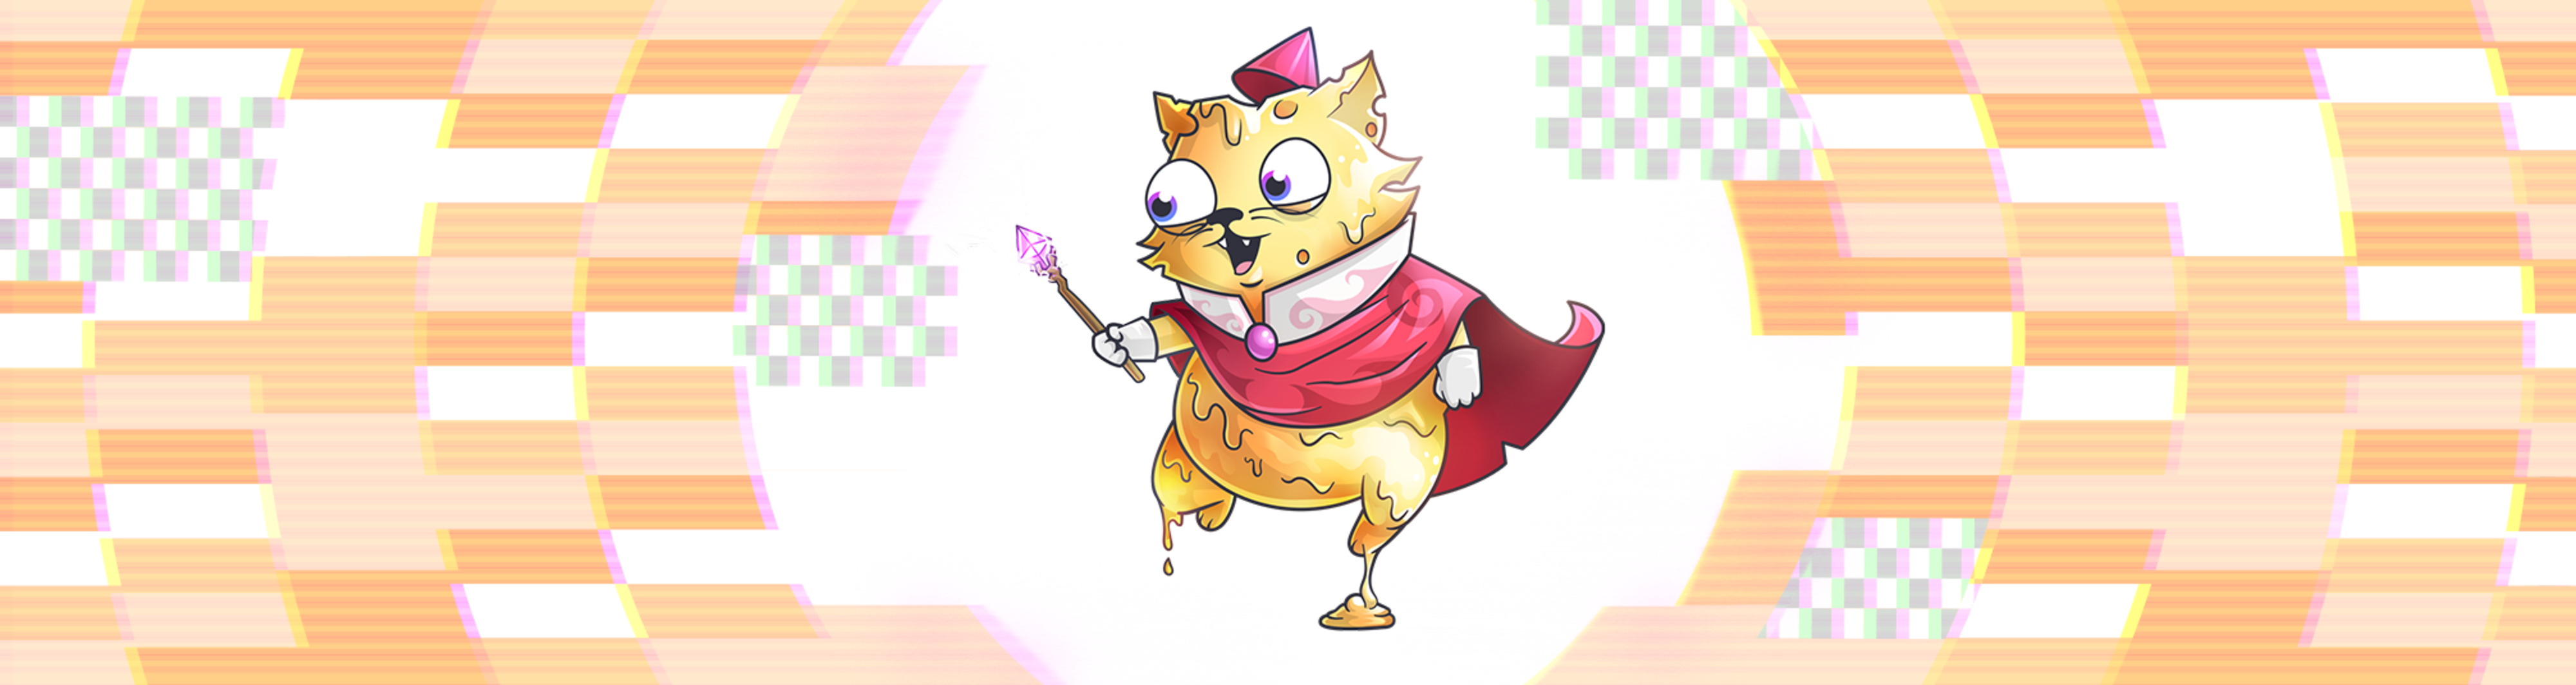 Things are getting cheezy in CryptoKitties